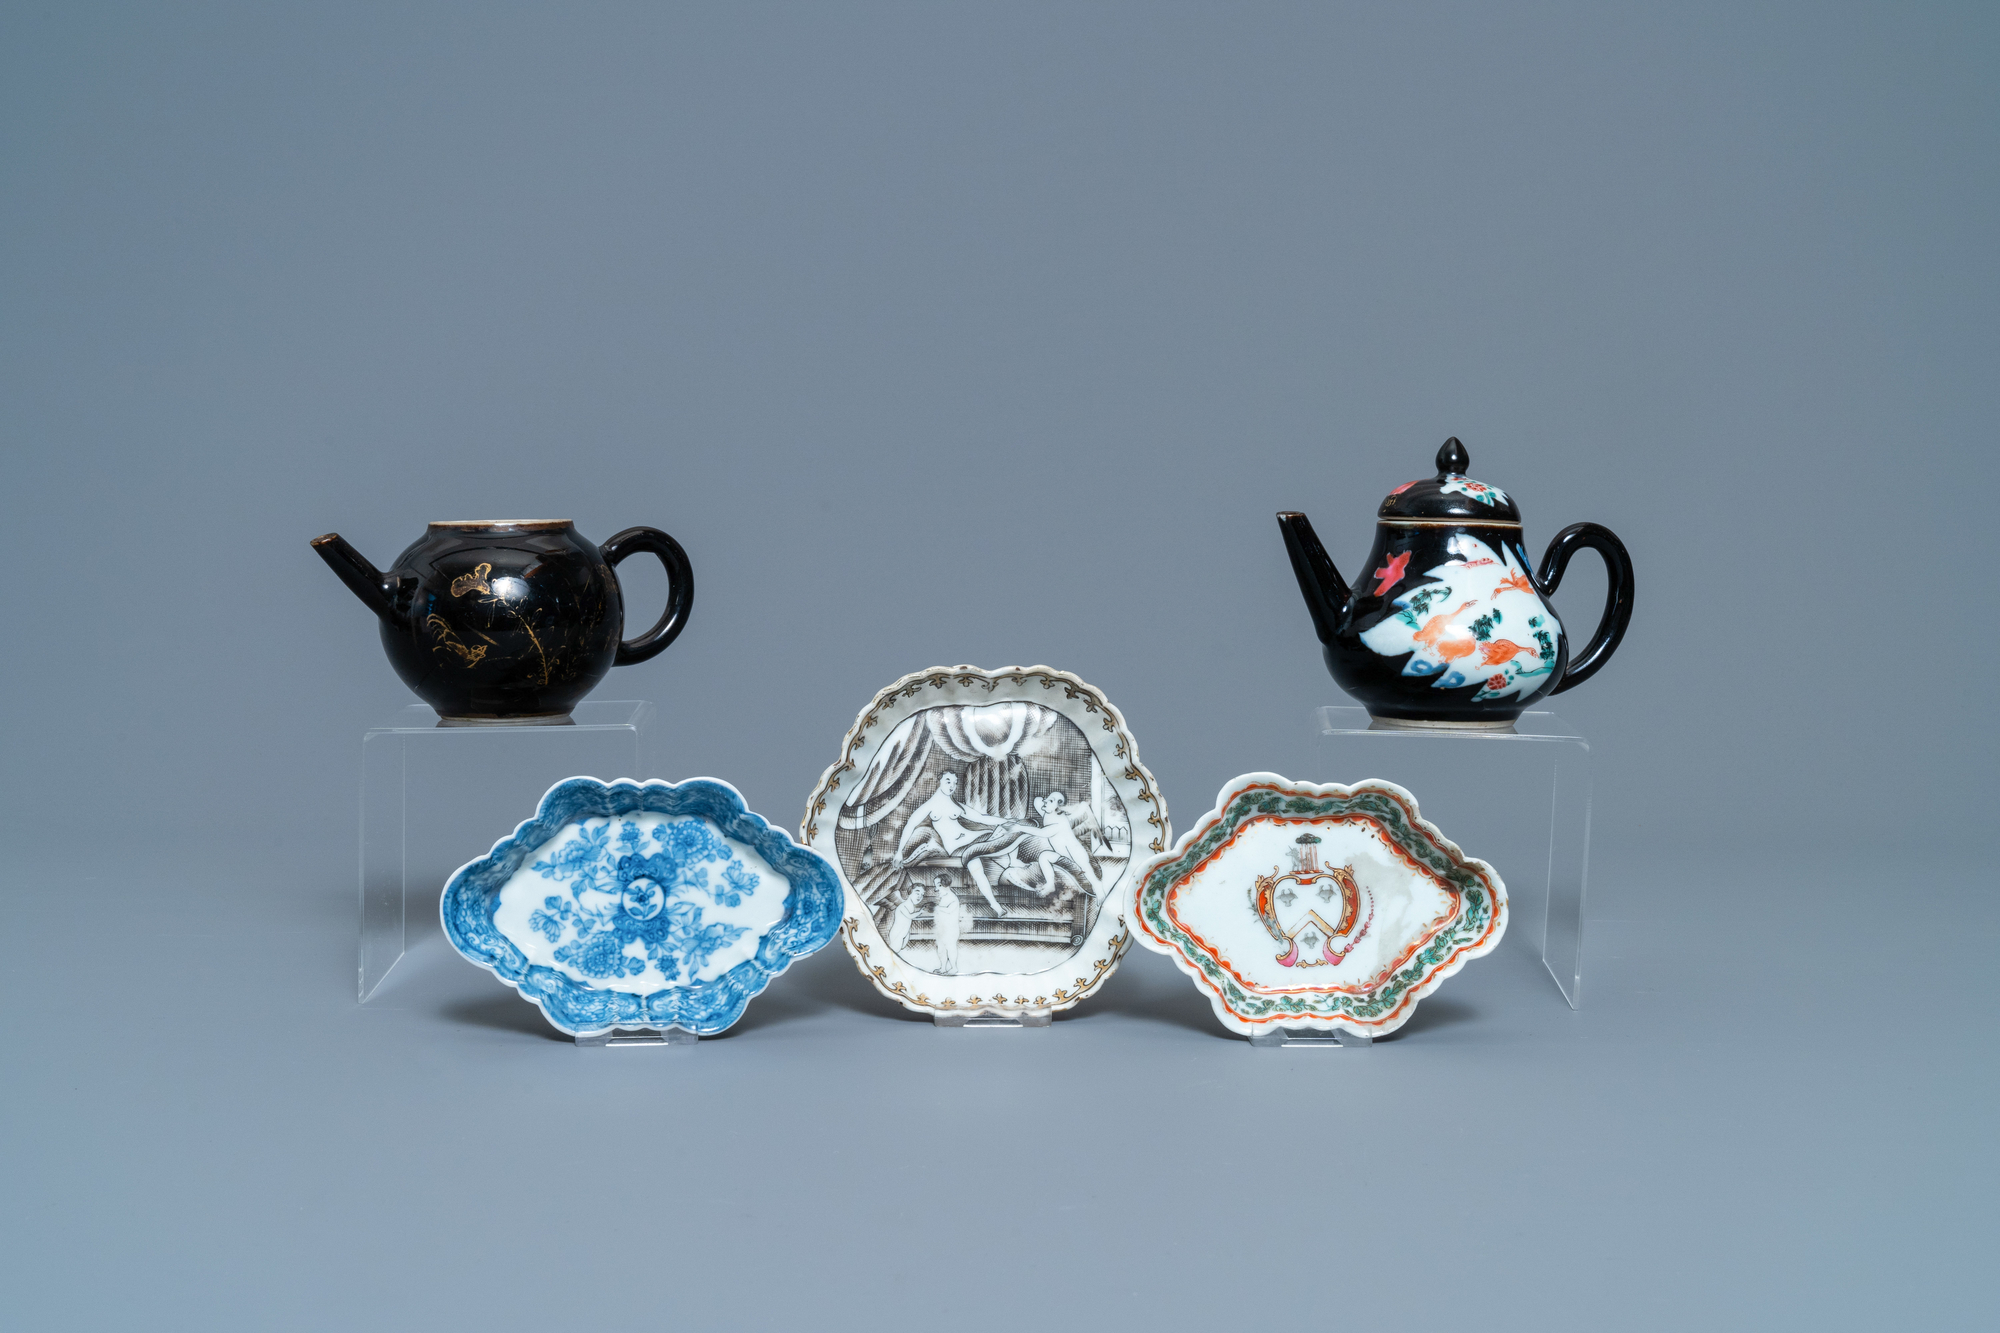 Two Chinese famille noire teapots, a pattipan and two spoon trays, Yongzheng/Qianlong